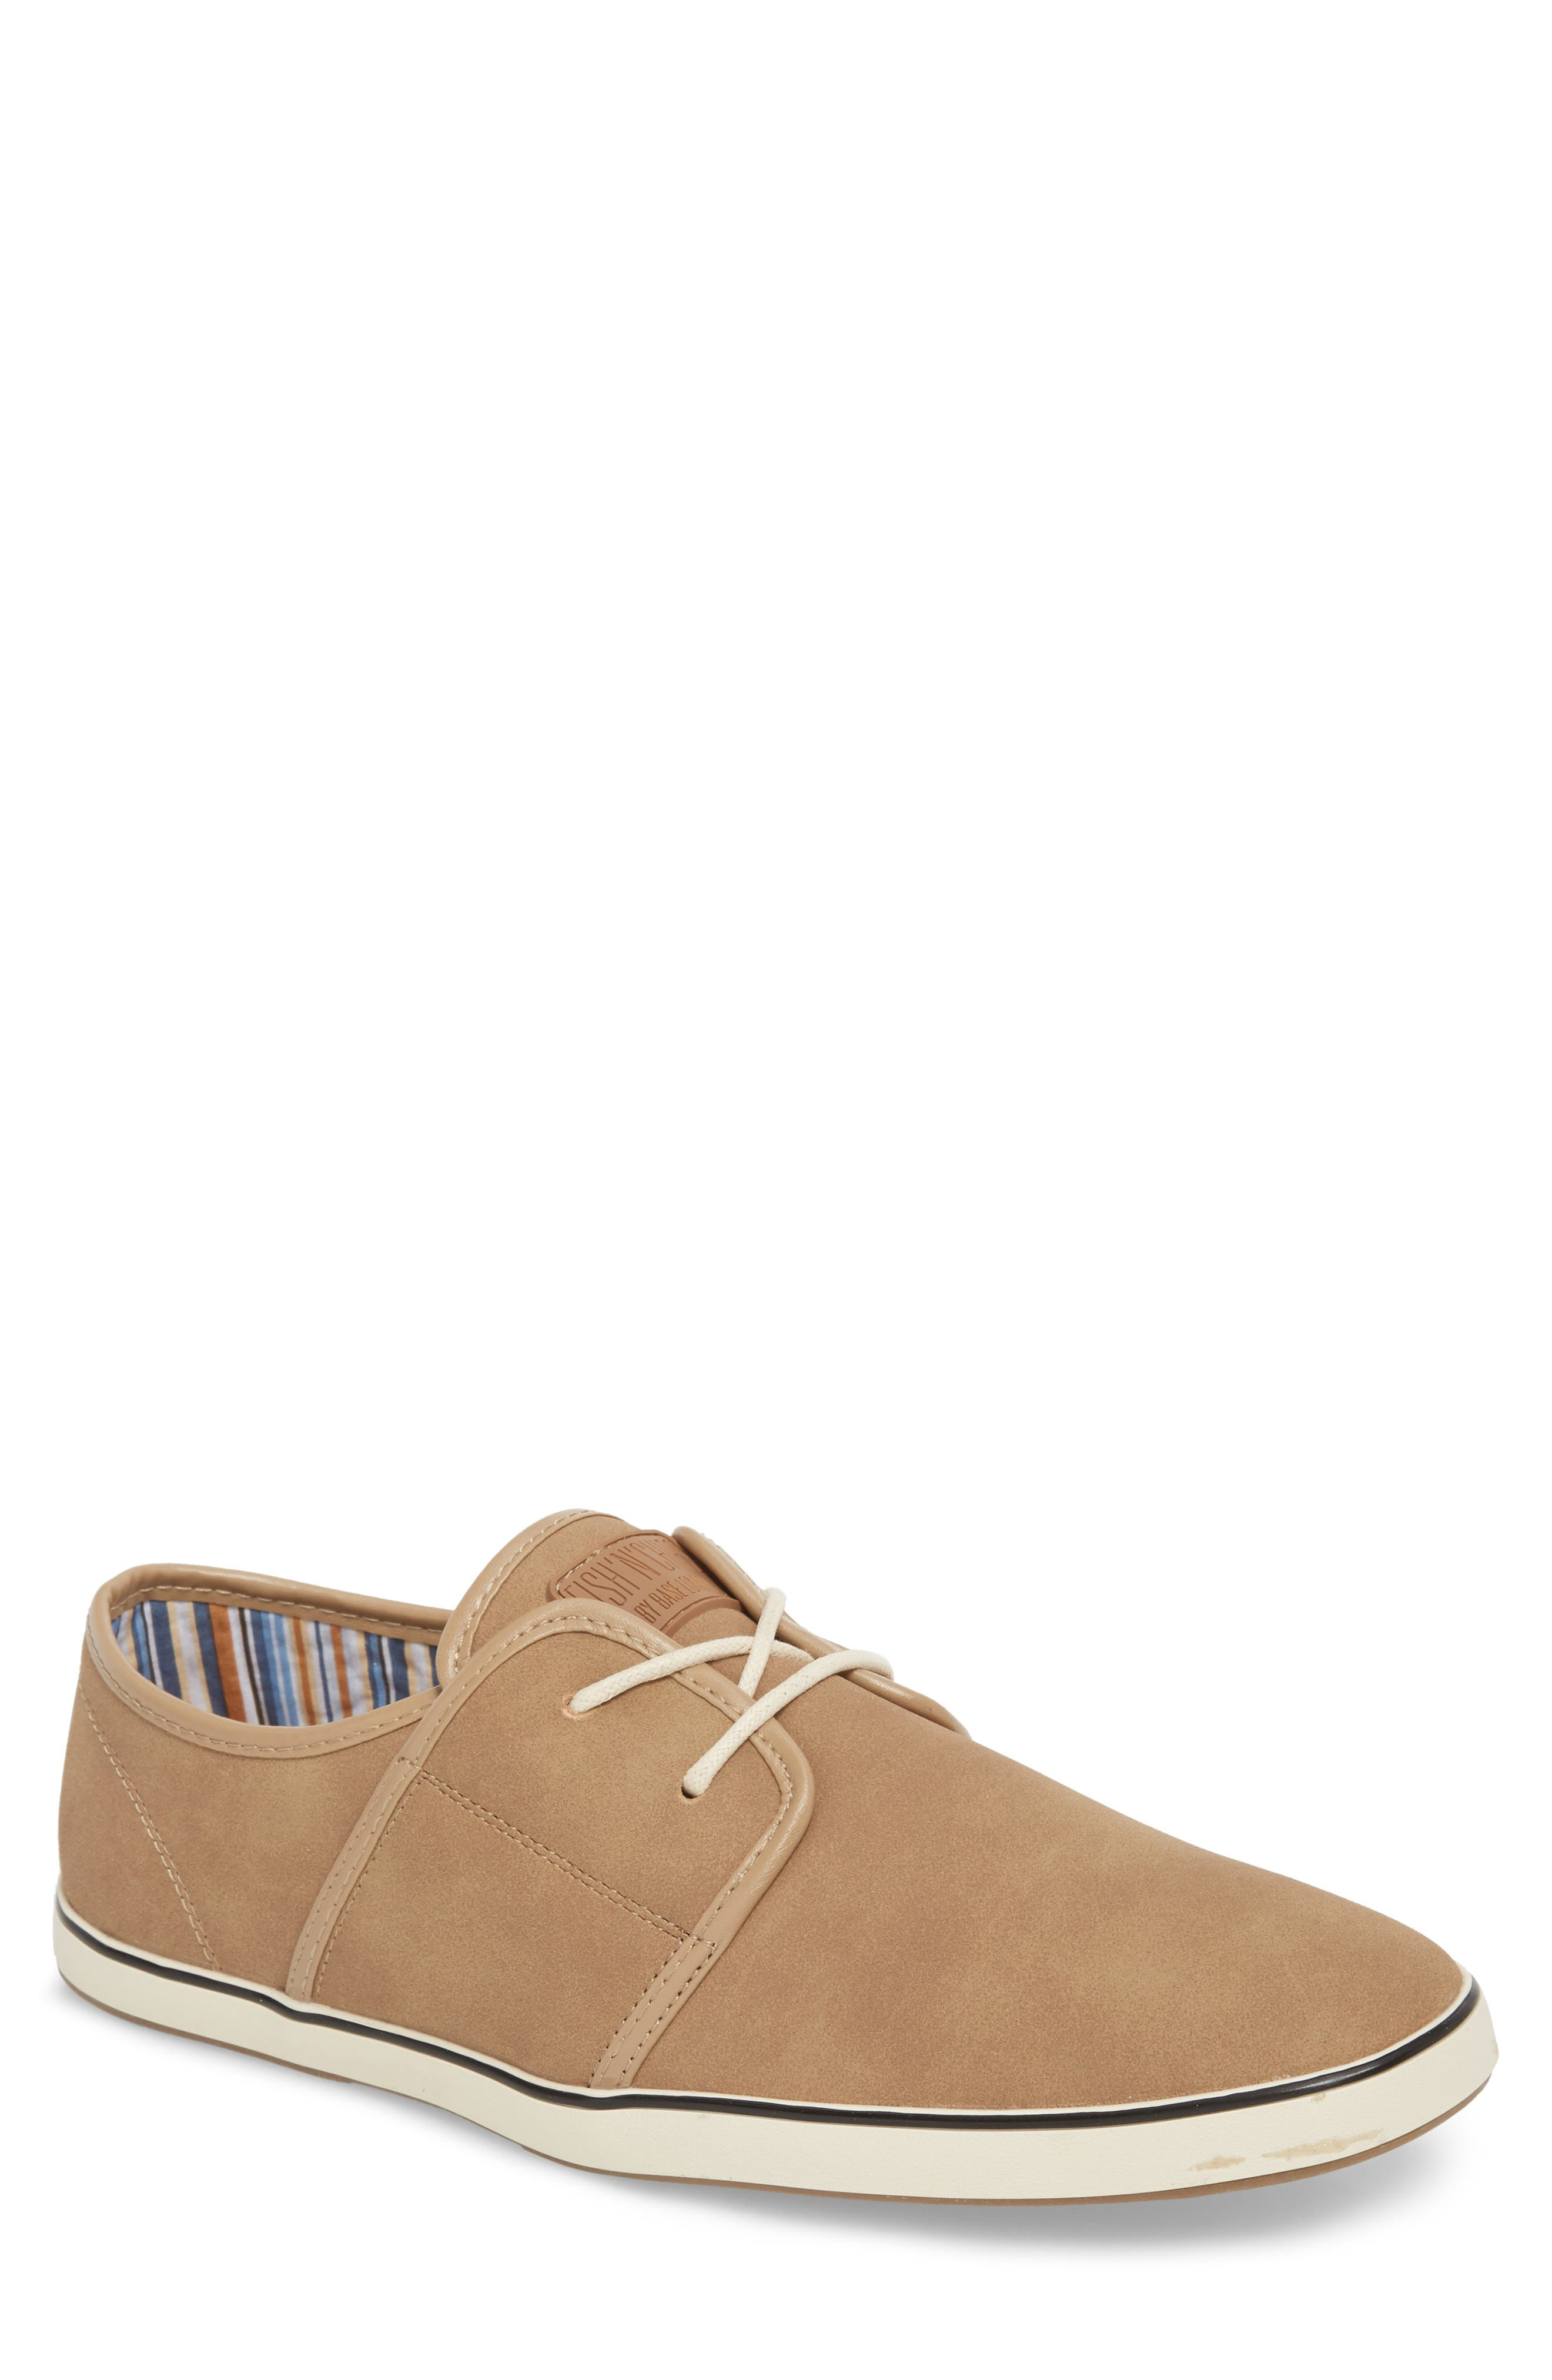 Fish 'N' Chips Surrey Low Top Sneaker,                         Main,                         color, Soft Clay Faux Suede